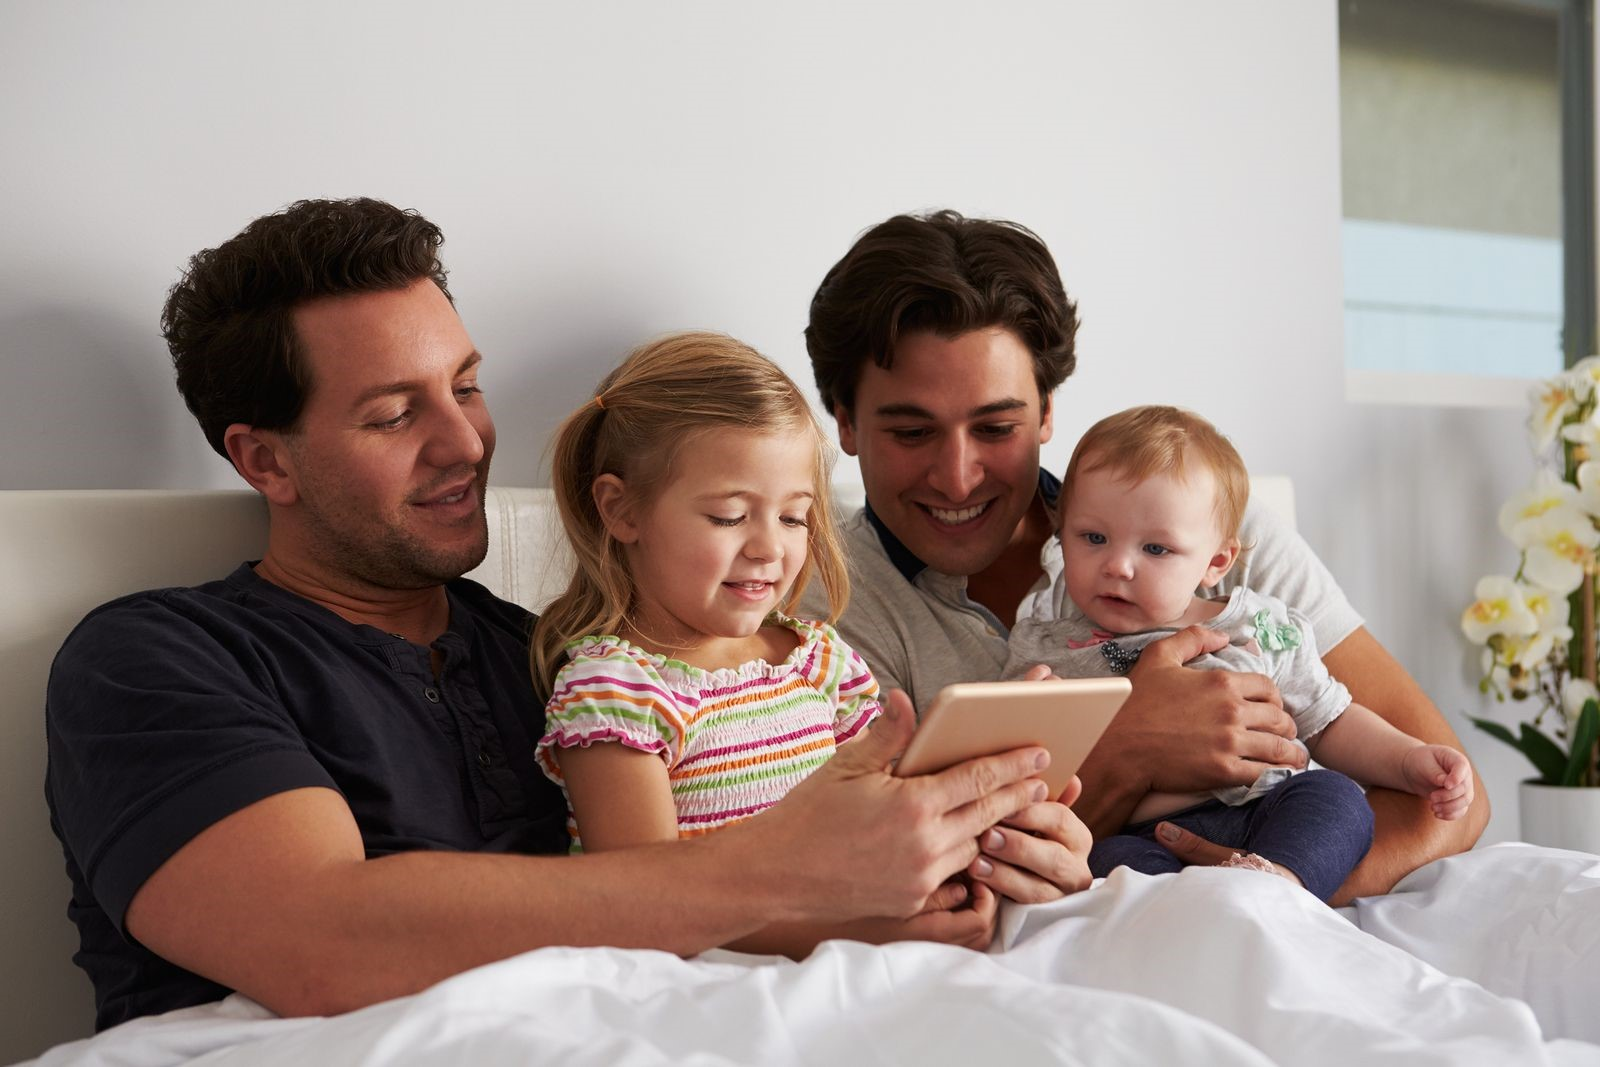 Gay Surrogacy Greece: Do LGBT Couples Have the Right to Surrogacy?